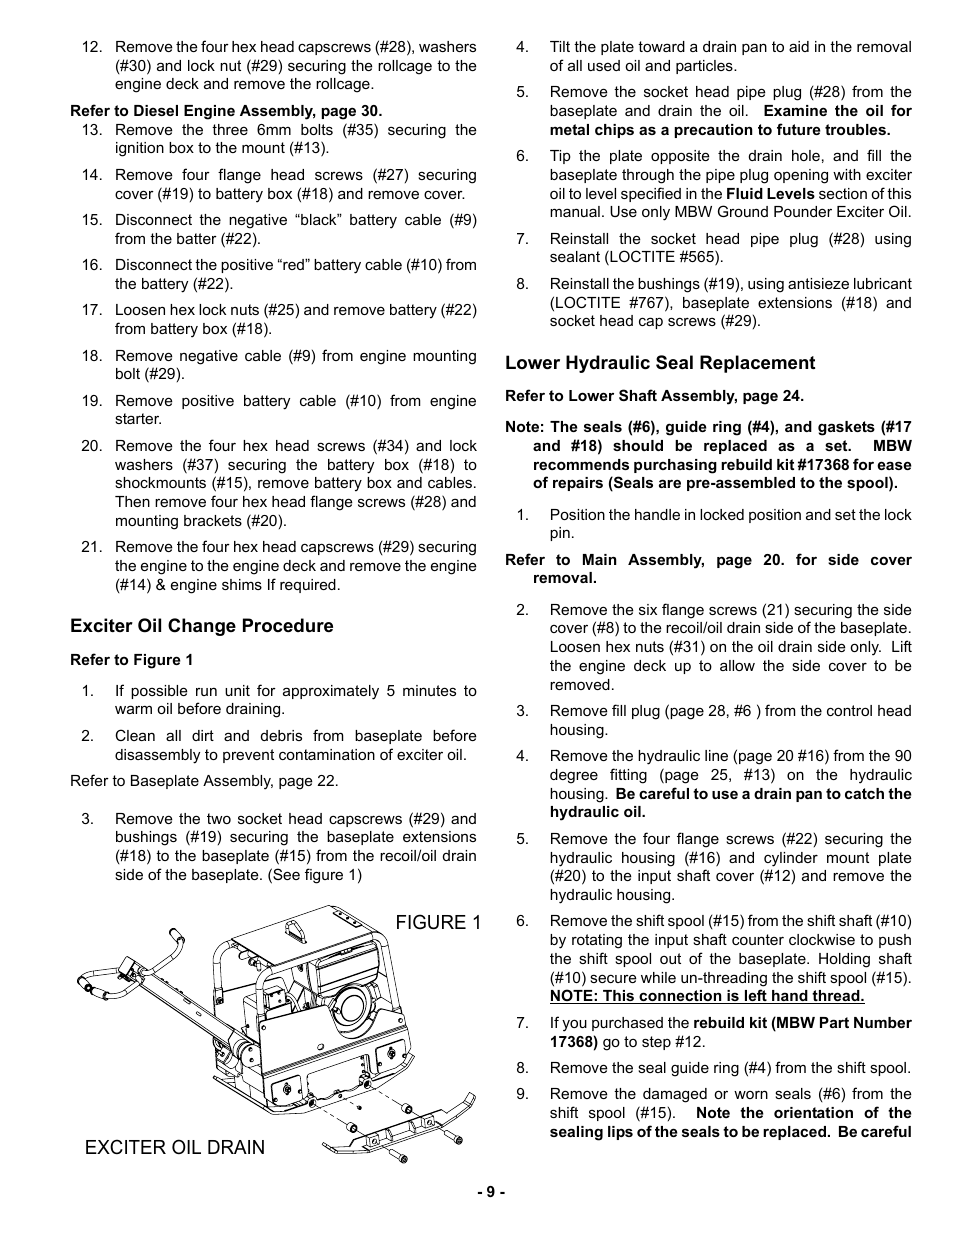 Exciter oil change procedure, Lower hydraulic seal